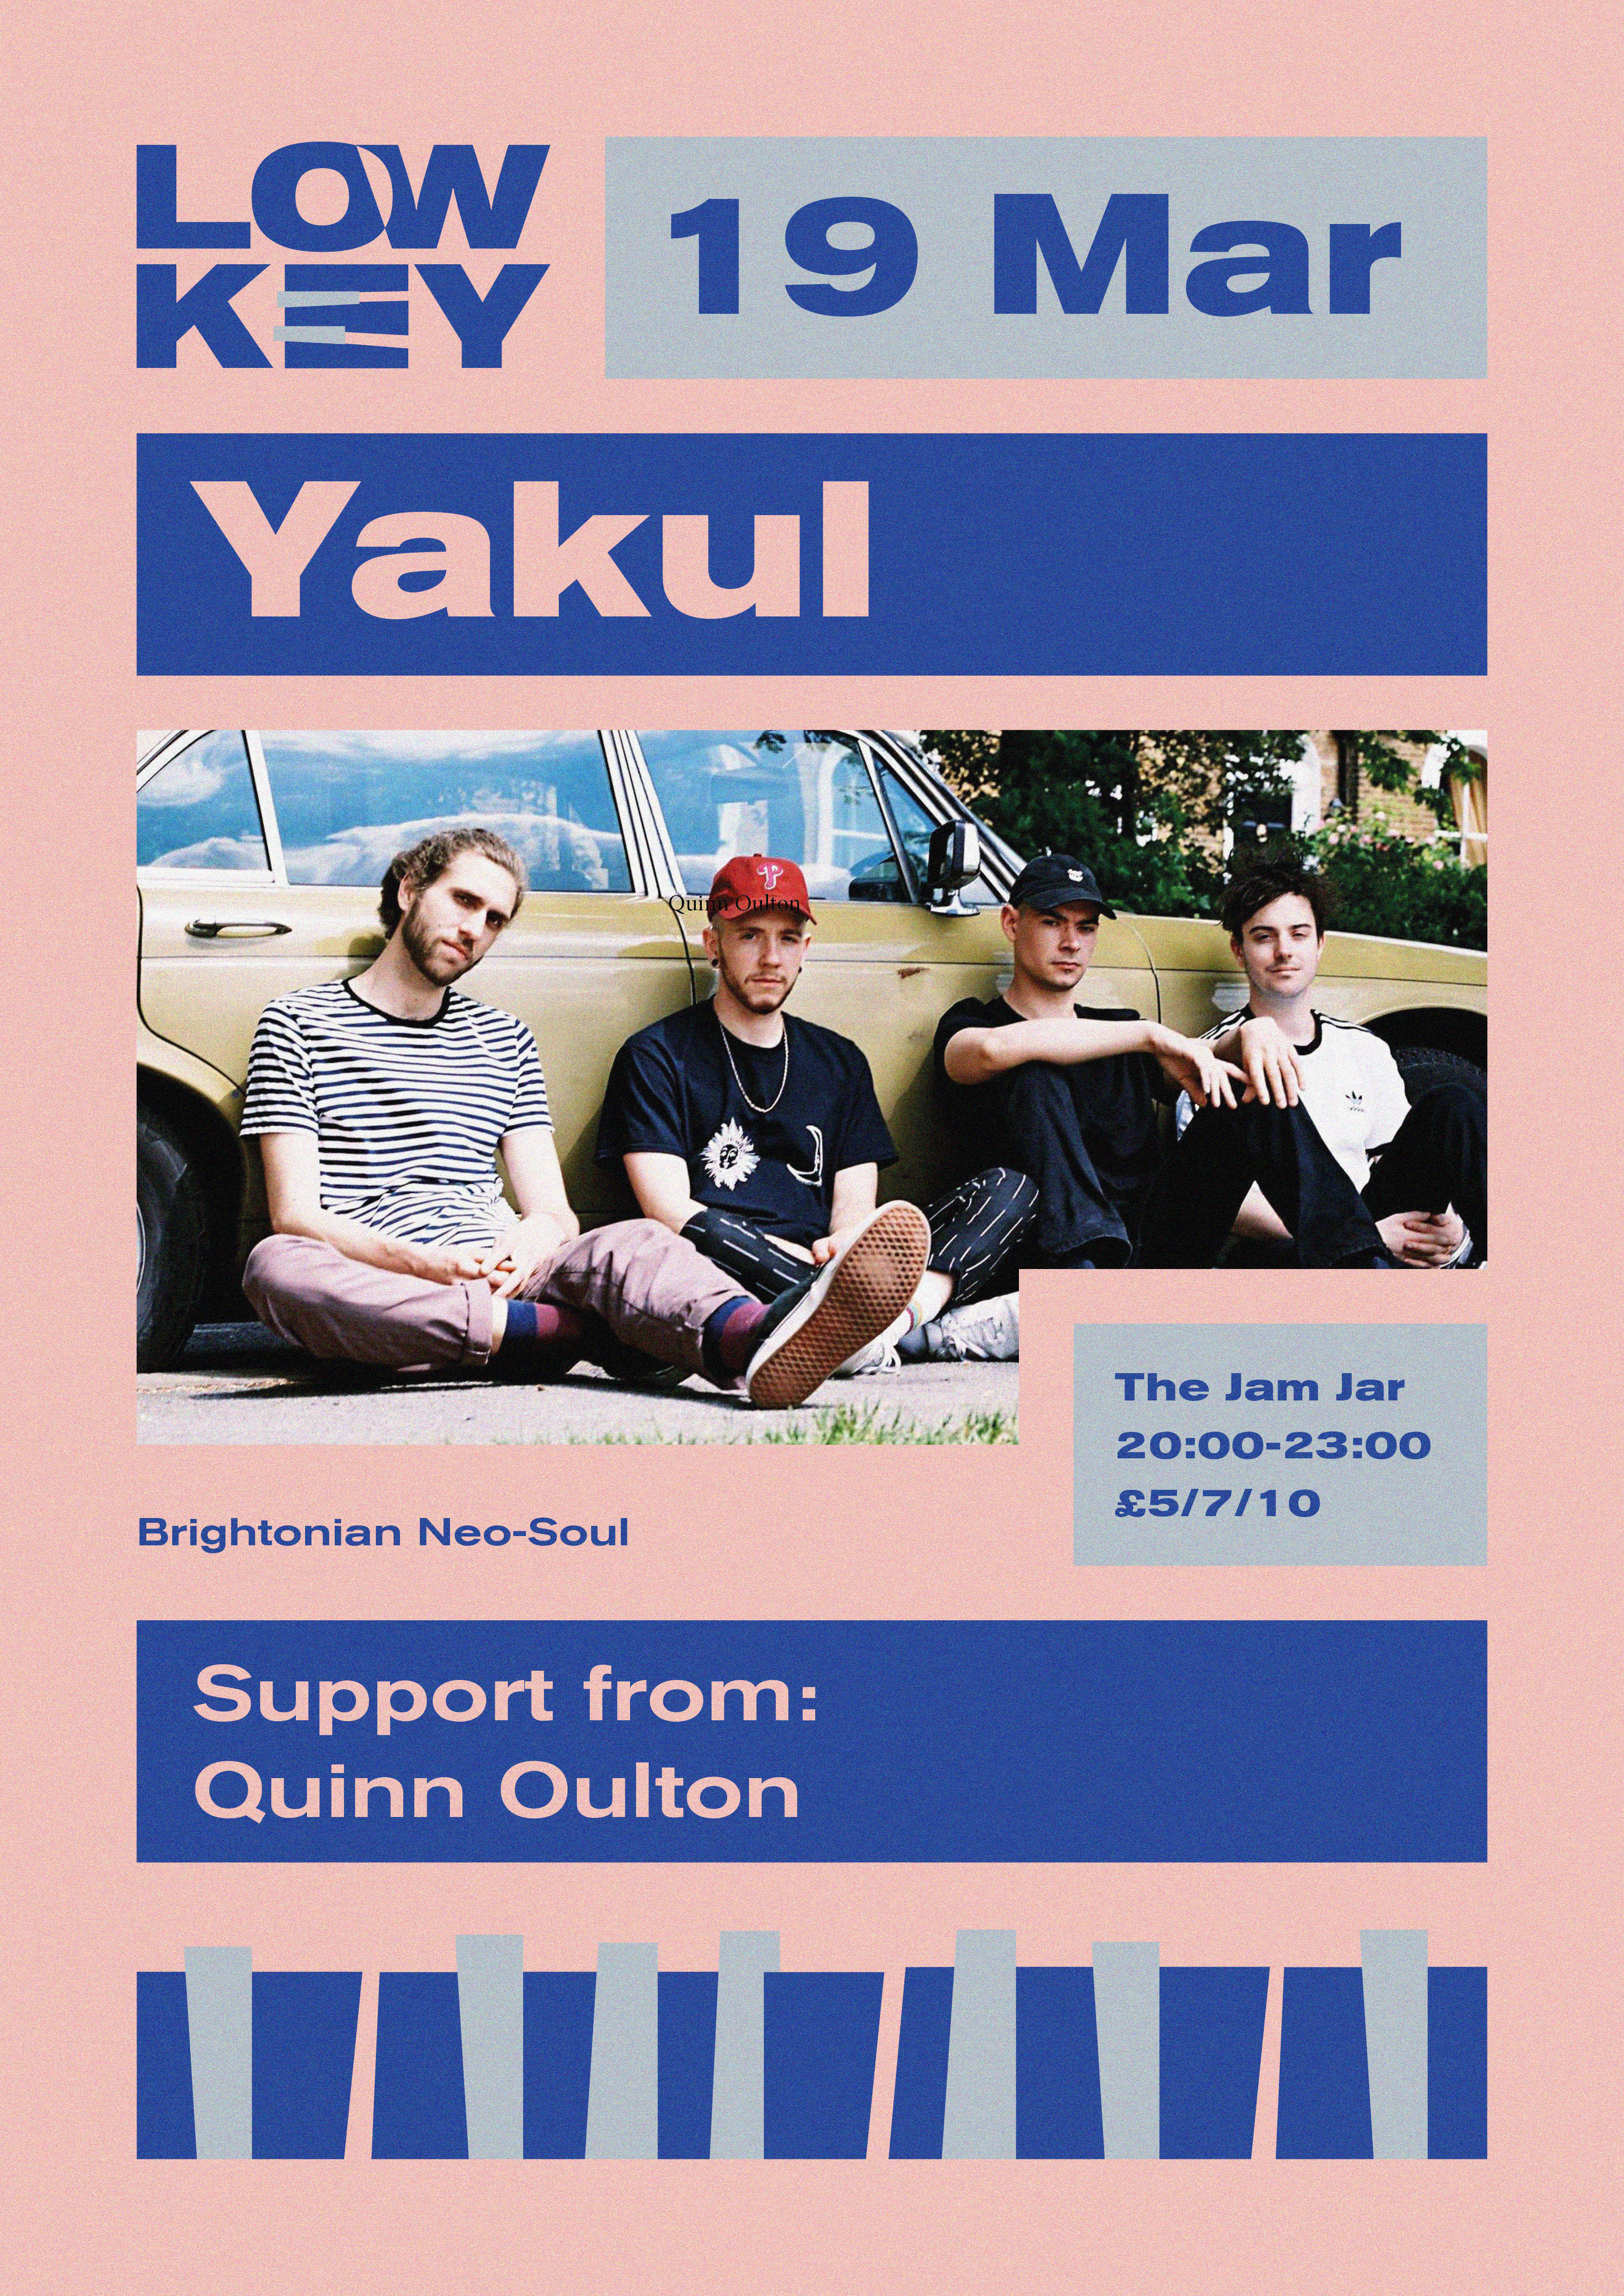 Event Poster For CANCELLED: LowKey 003: Yakul - Bristol debut